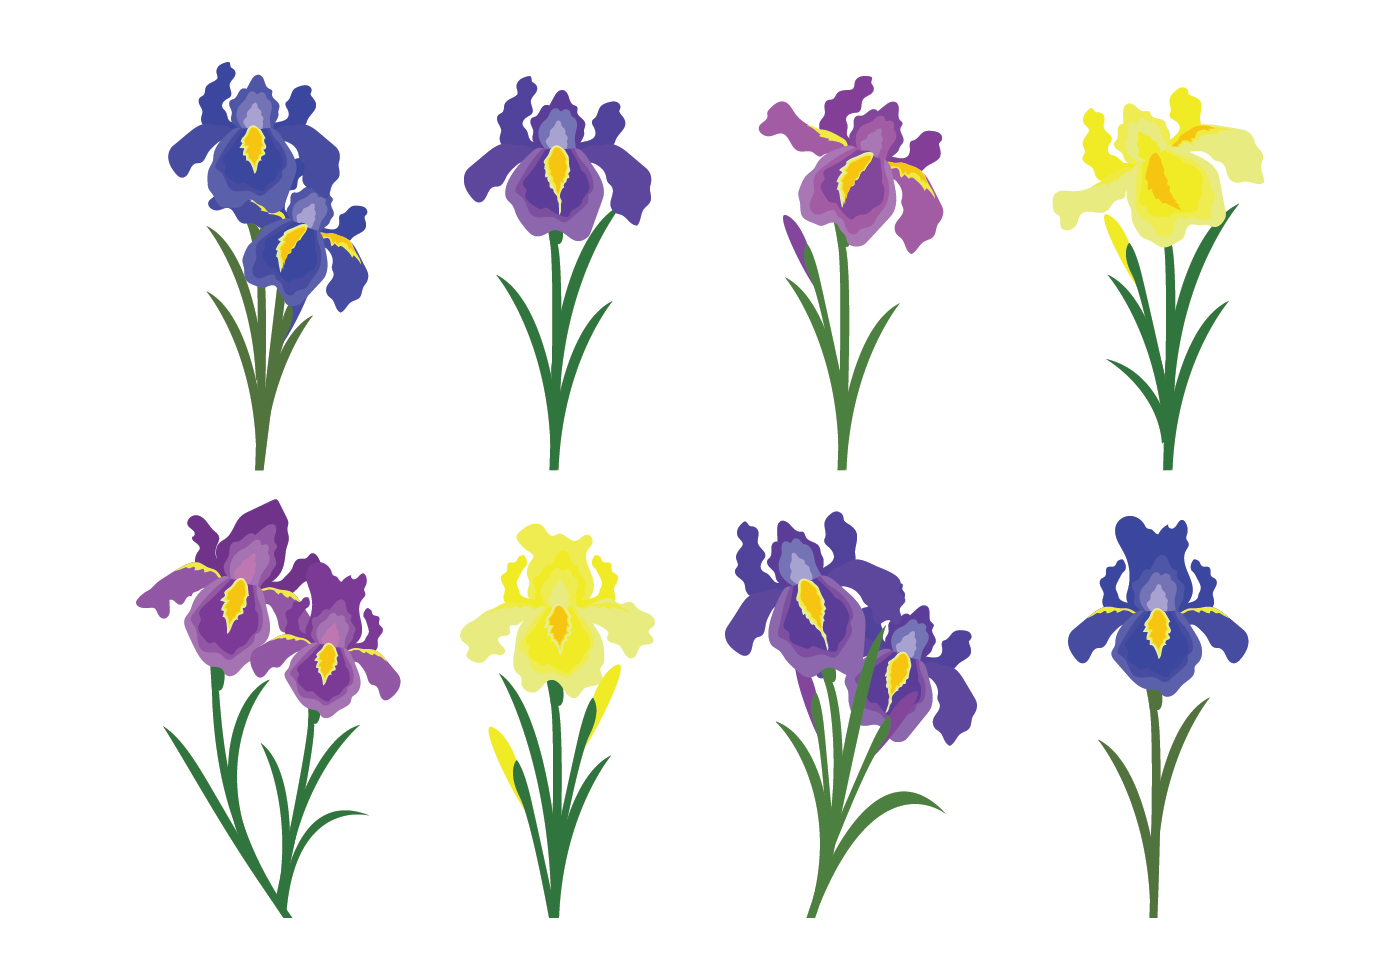 Flashcardlargecolors moreover Easter Eggs Images Clipart Coloring Pages in addition Horror Monsters additionally Corals furthermore 12 Diy Halloween Costume Ideas. on easter flowers coloring pages